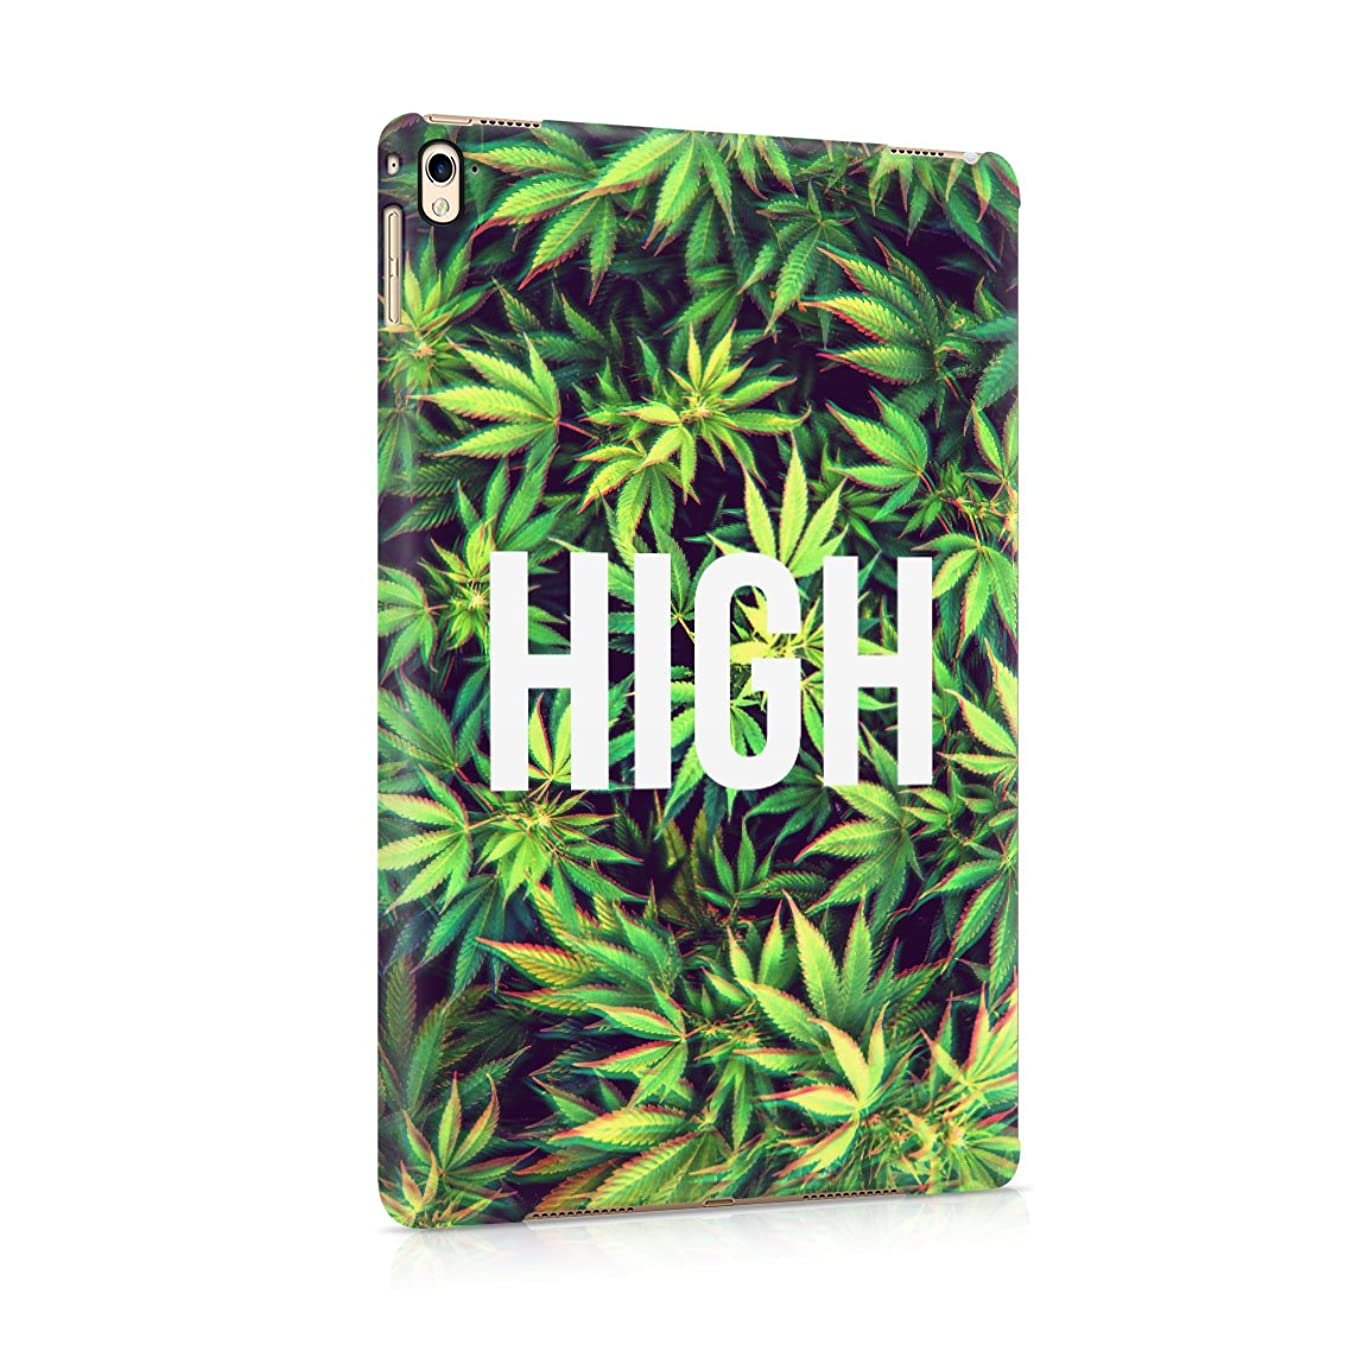 High Trippy Cannabis Leaves Pattern Plastic Tablet Snap On Back Cover Shell For iPad Pro 9.7